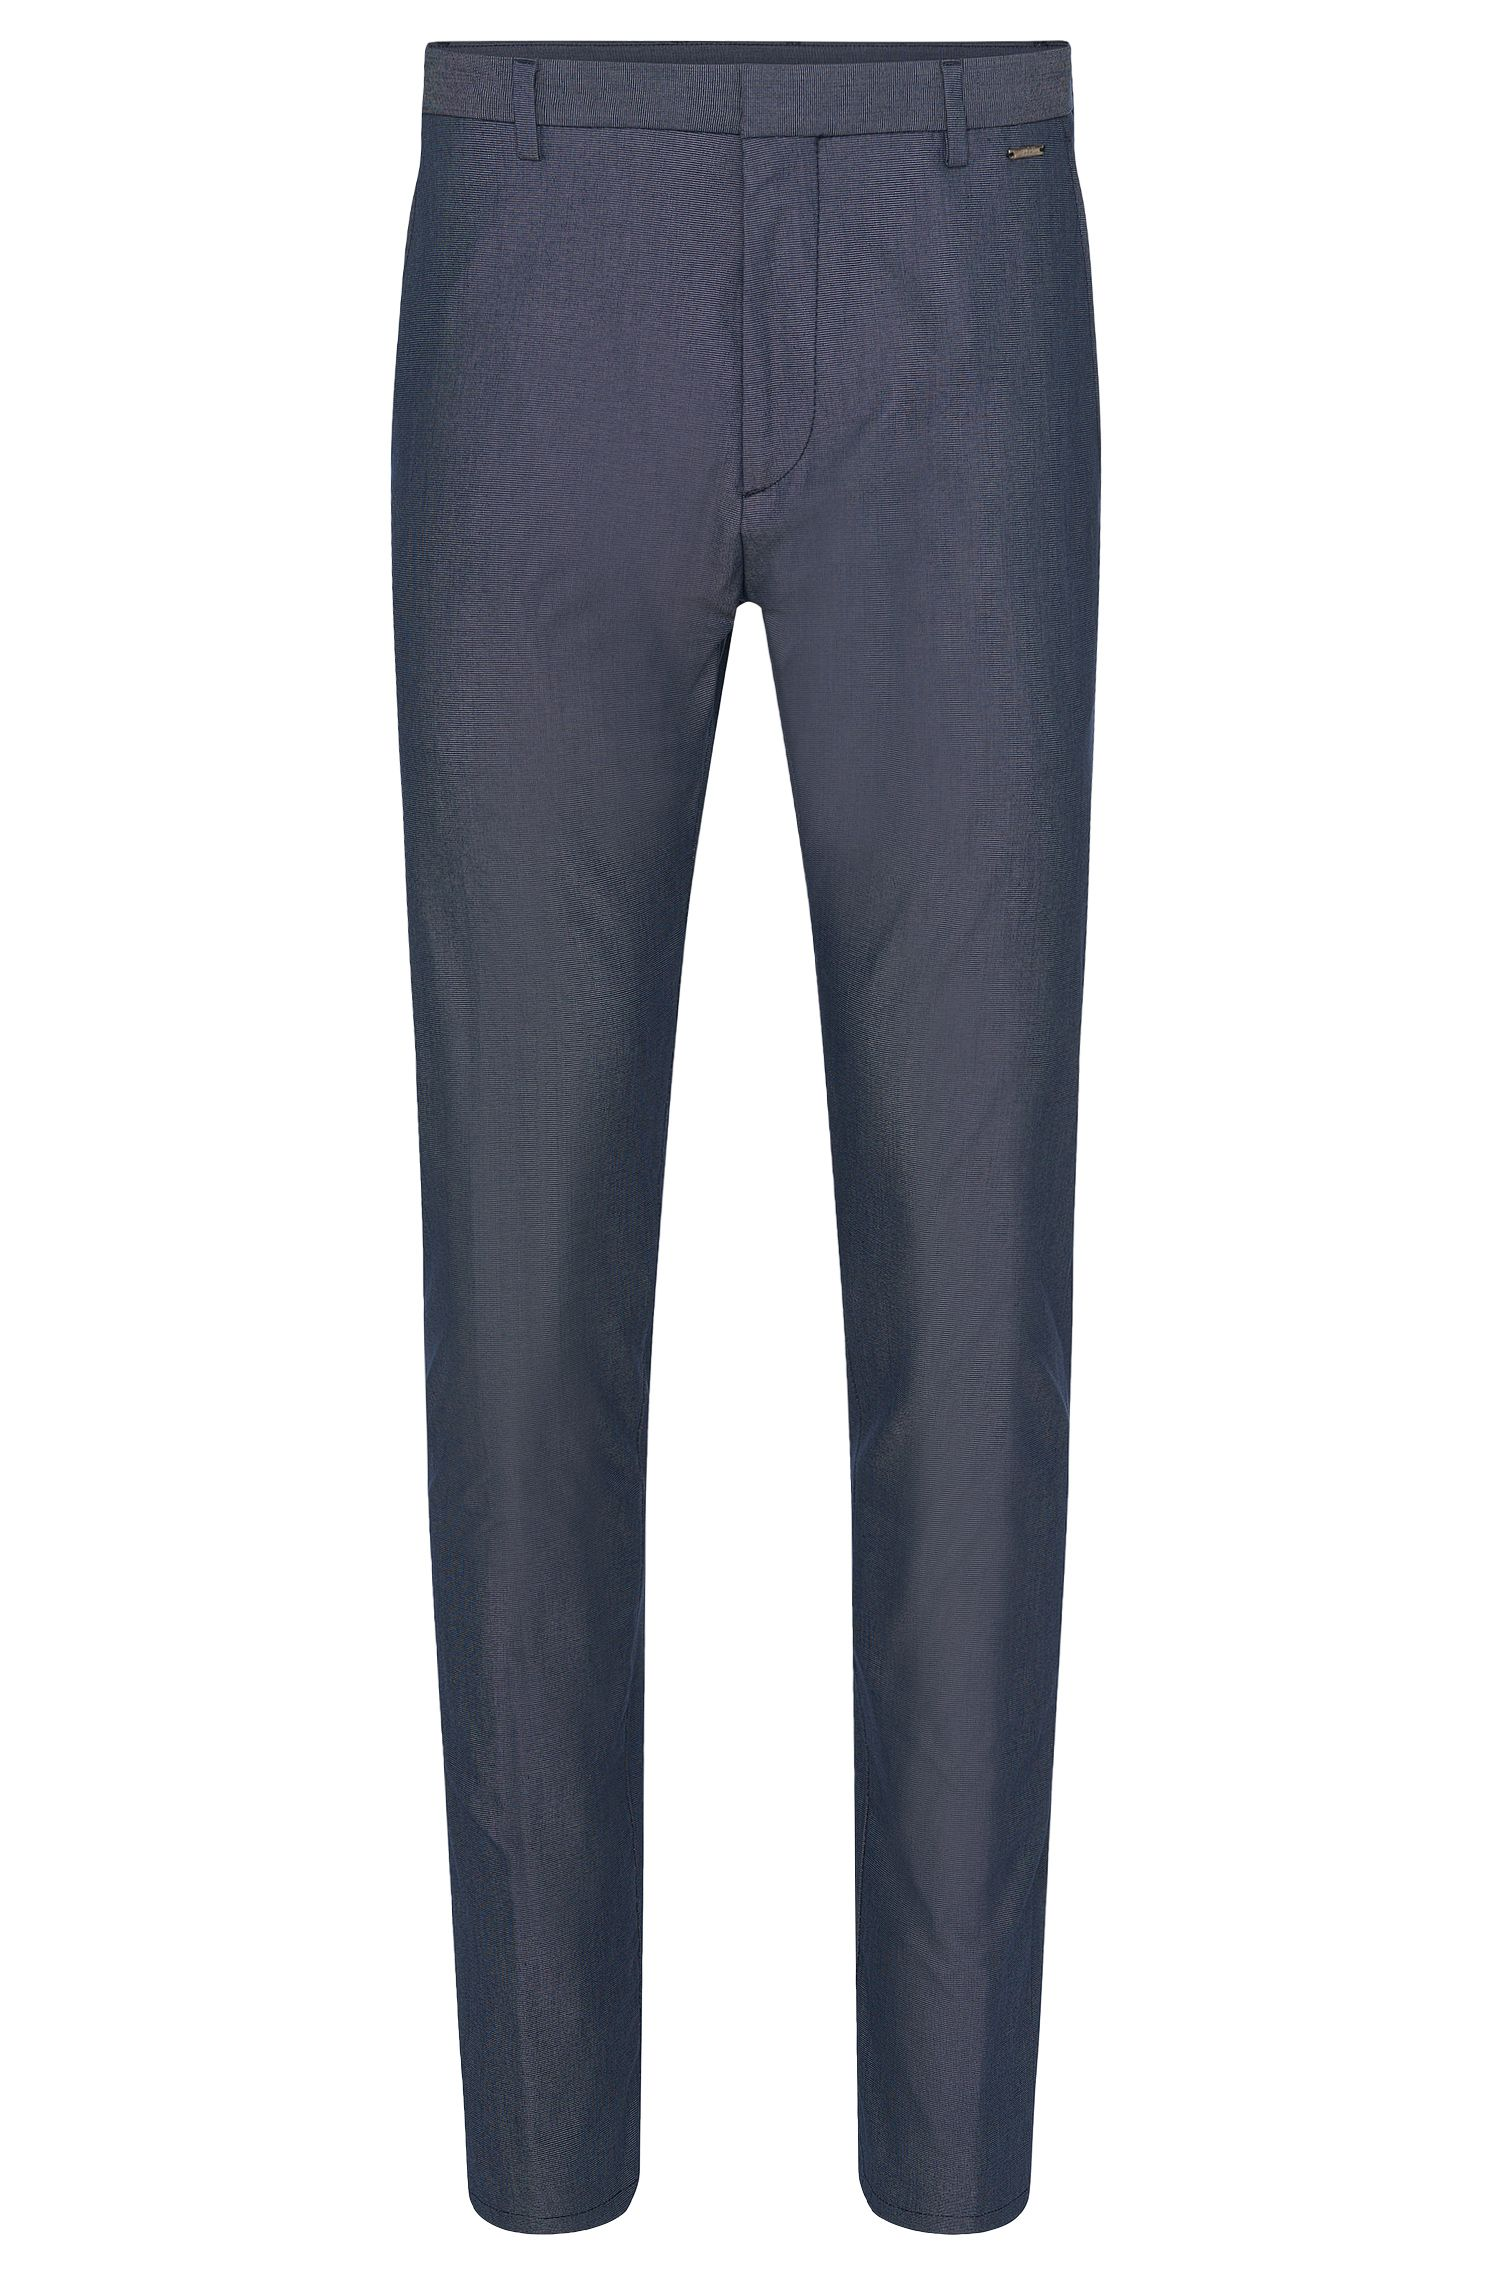 'Helgo' | Regular Fit, Stretch Cotton Blend Trousers